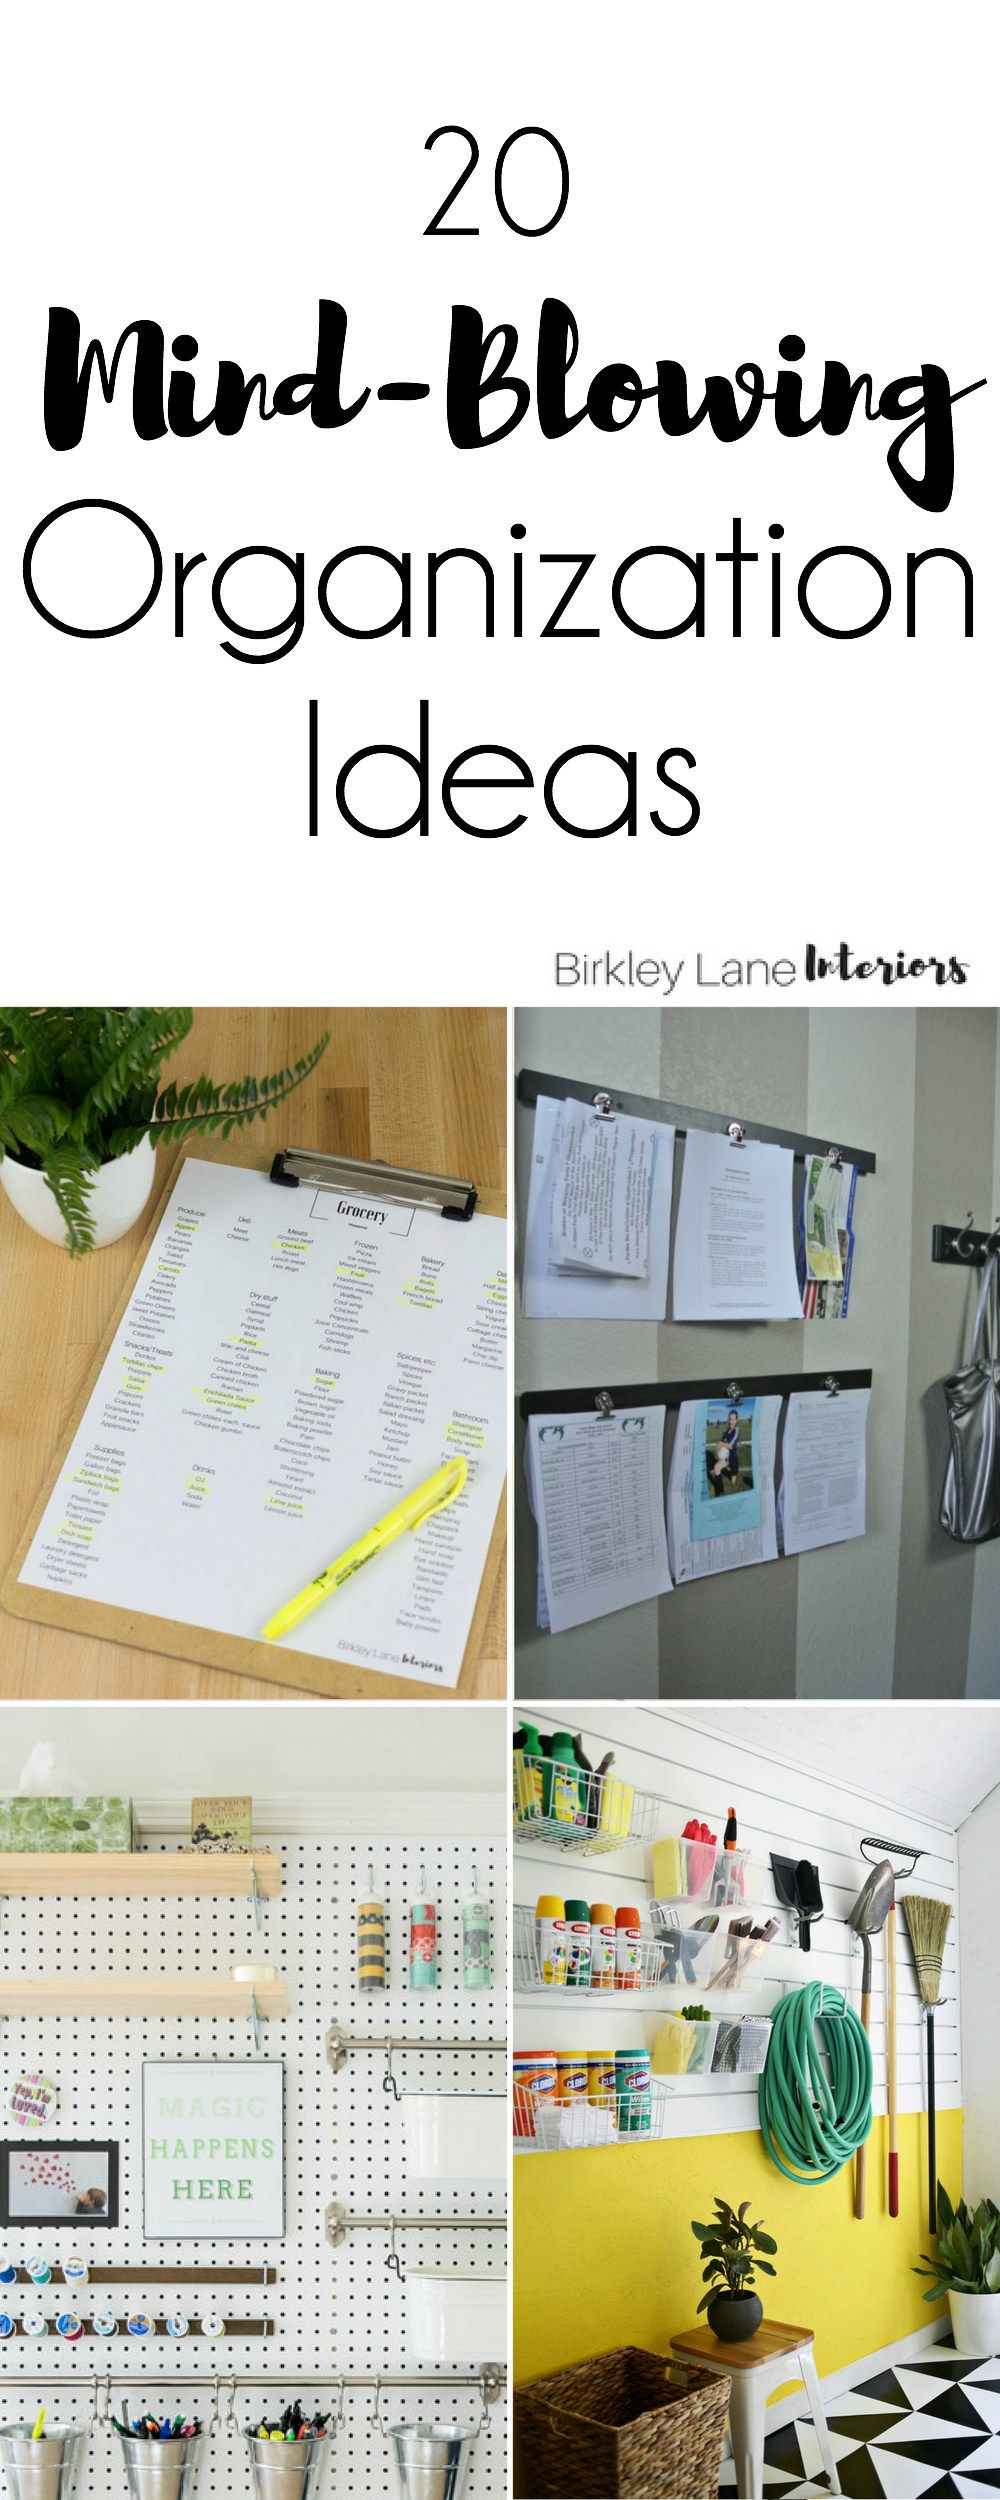 20 Mind-Blowing Organization Ideas for Your Home | Diy organization ...